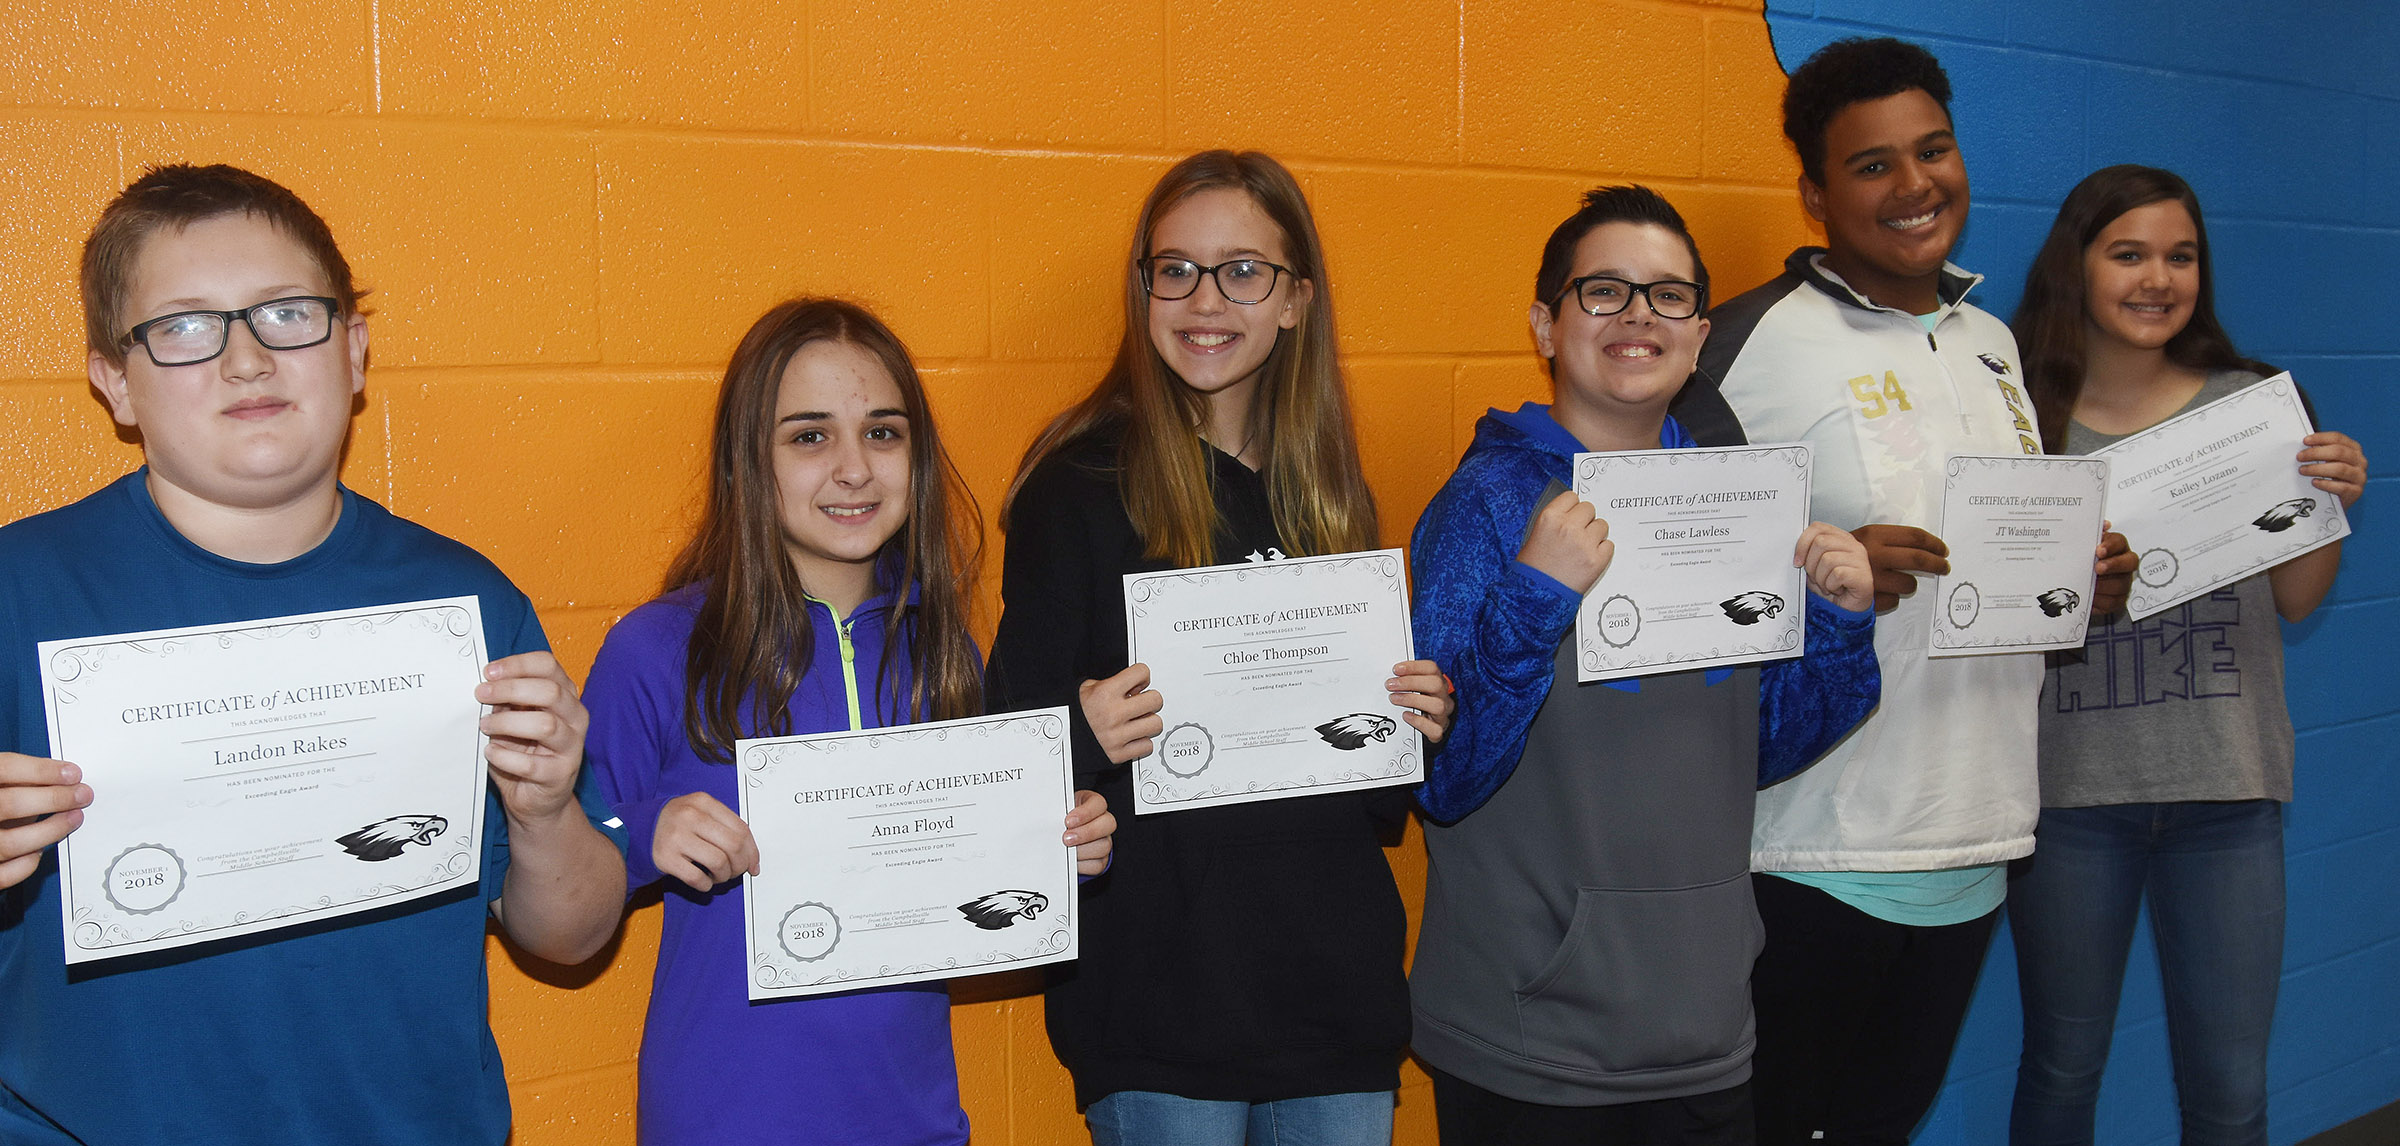 CMS Exceeding Eagles for the week of Oct. 29 are, from left, sixth-graders Landon Rakes and Anna Floyd, seventh-graders Chloe Thompson and Chase Lawless and eighth-graders J.T. Washington and Kailey Lozano.